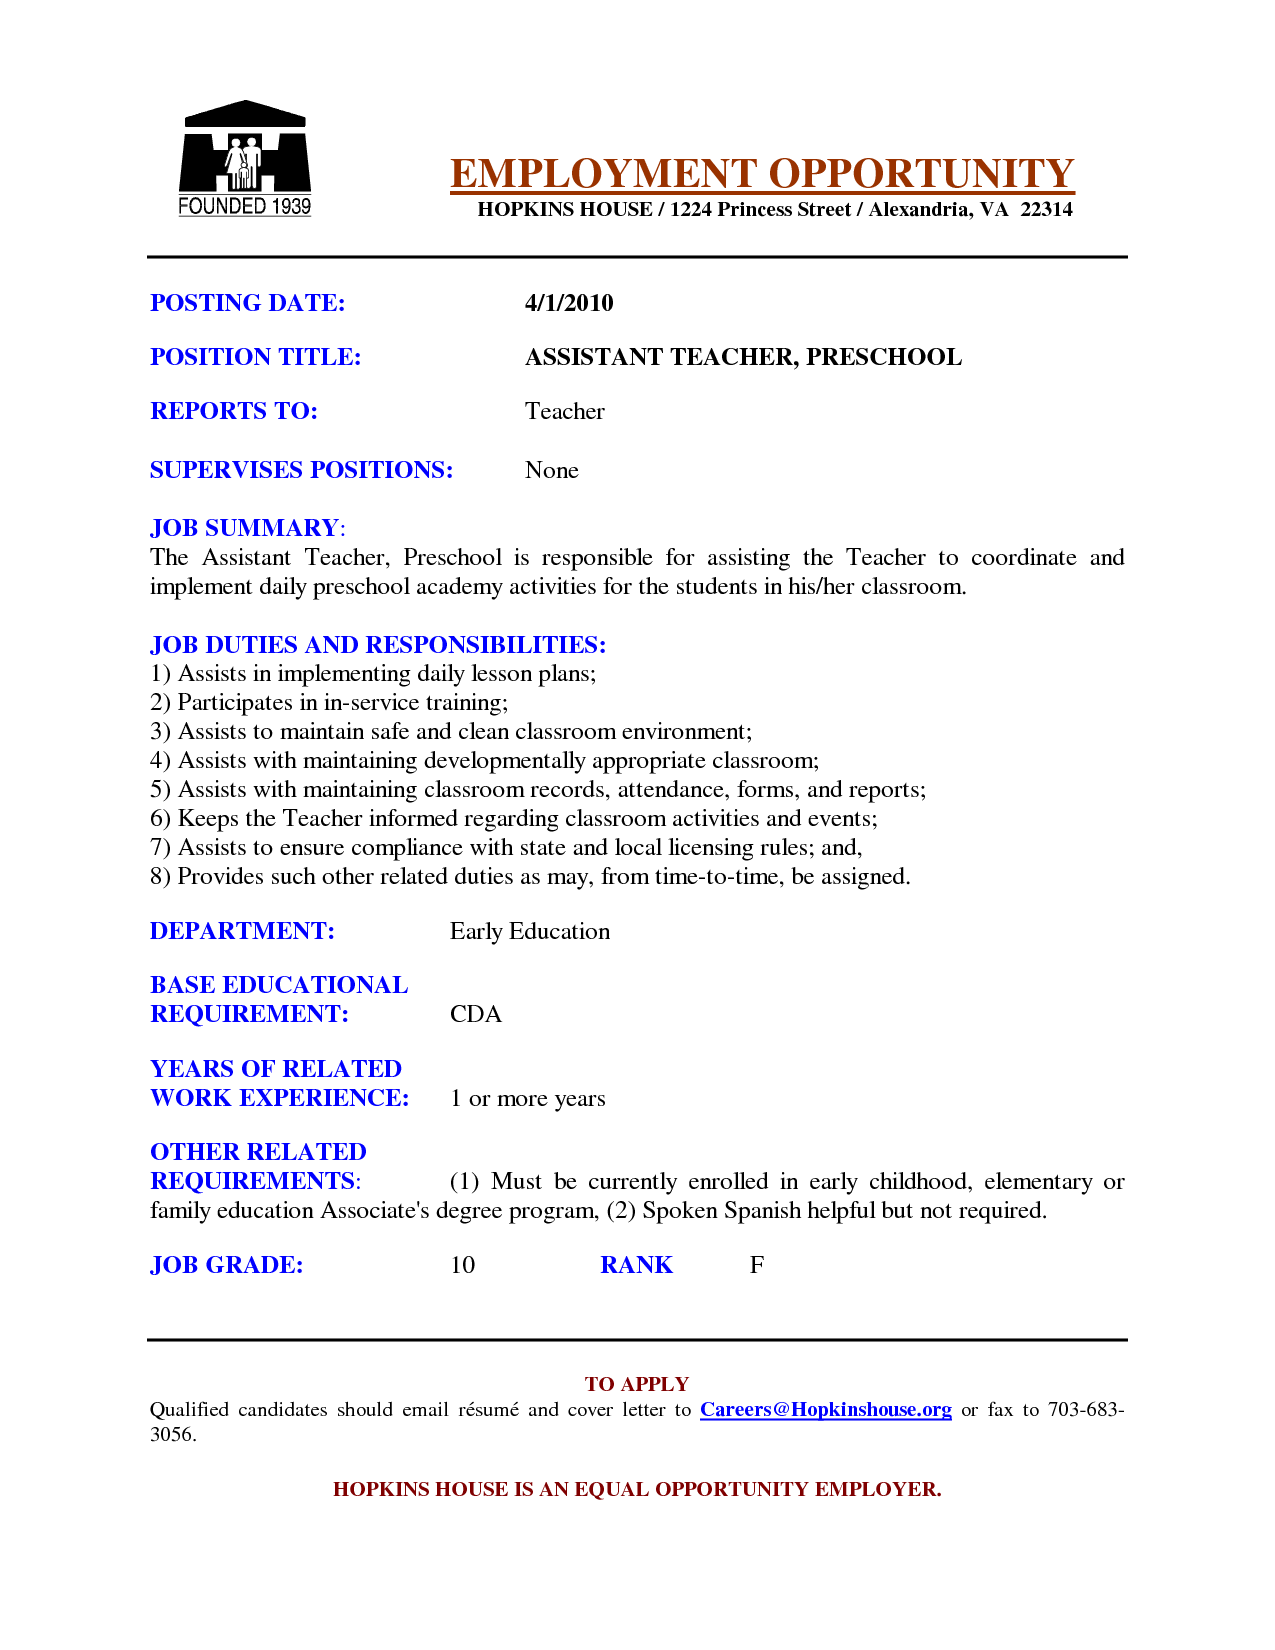 Resume For Preschool Teacher Preschool Assistant Teacher Resume Examples  Google Search